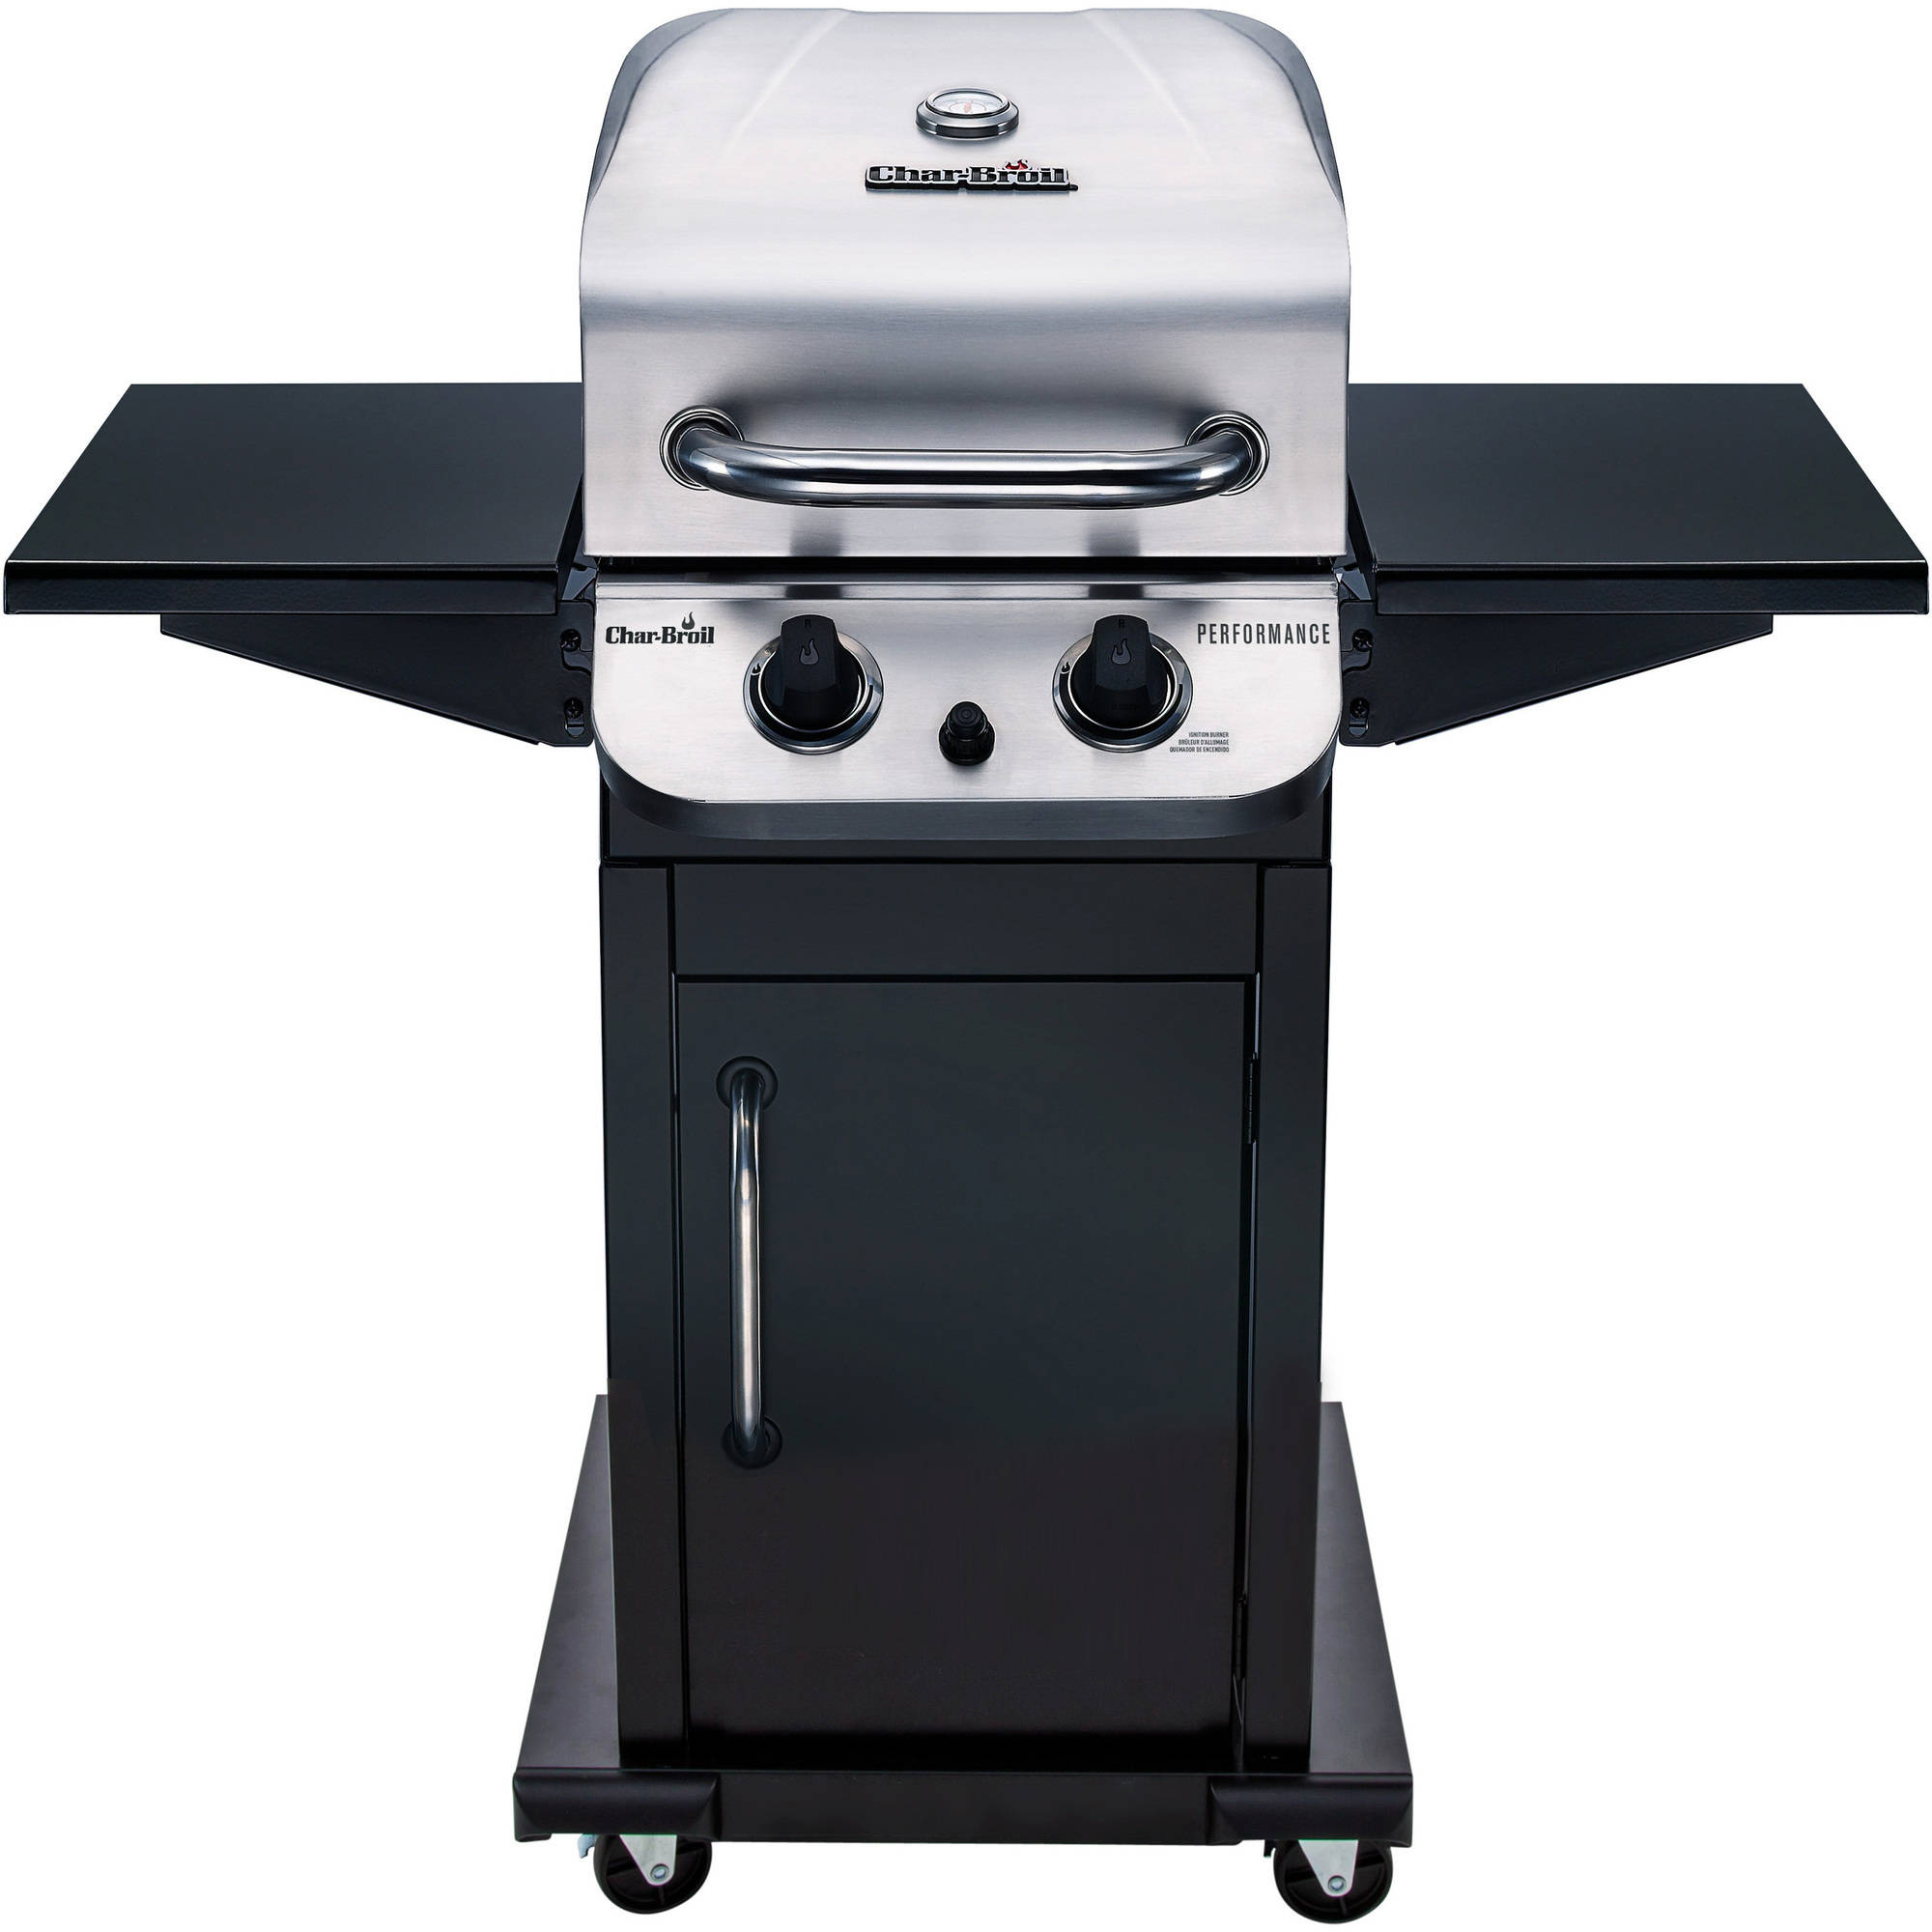 Char-Broil Performance 2-Burner Gas Grill by Char-Broil